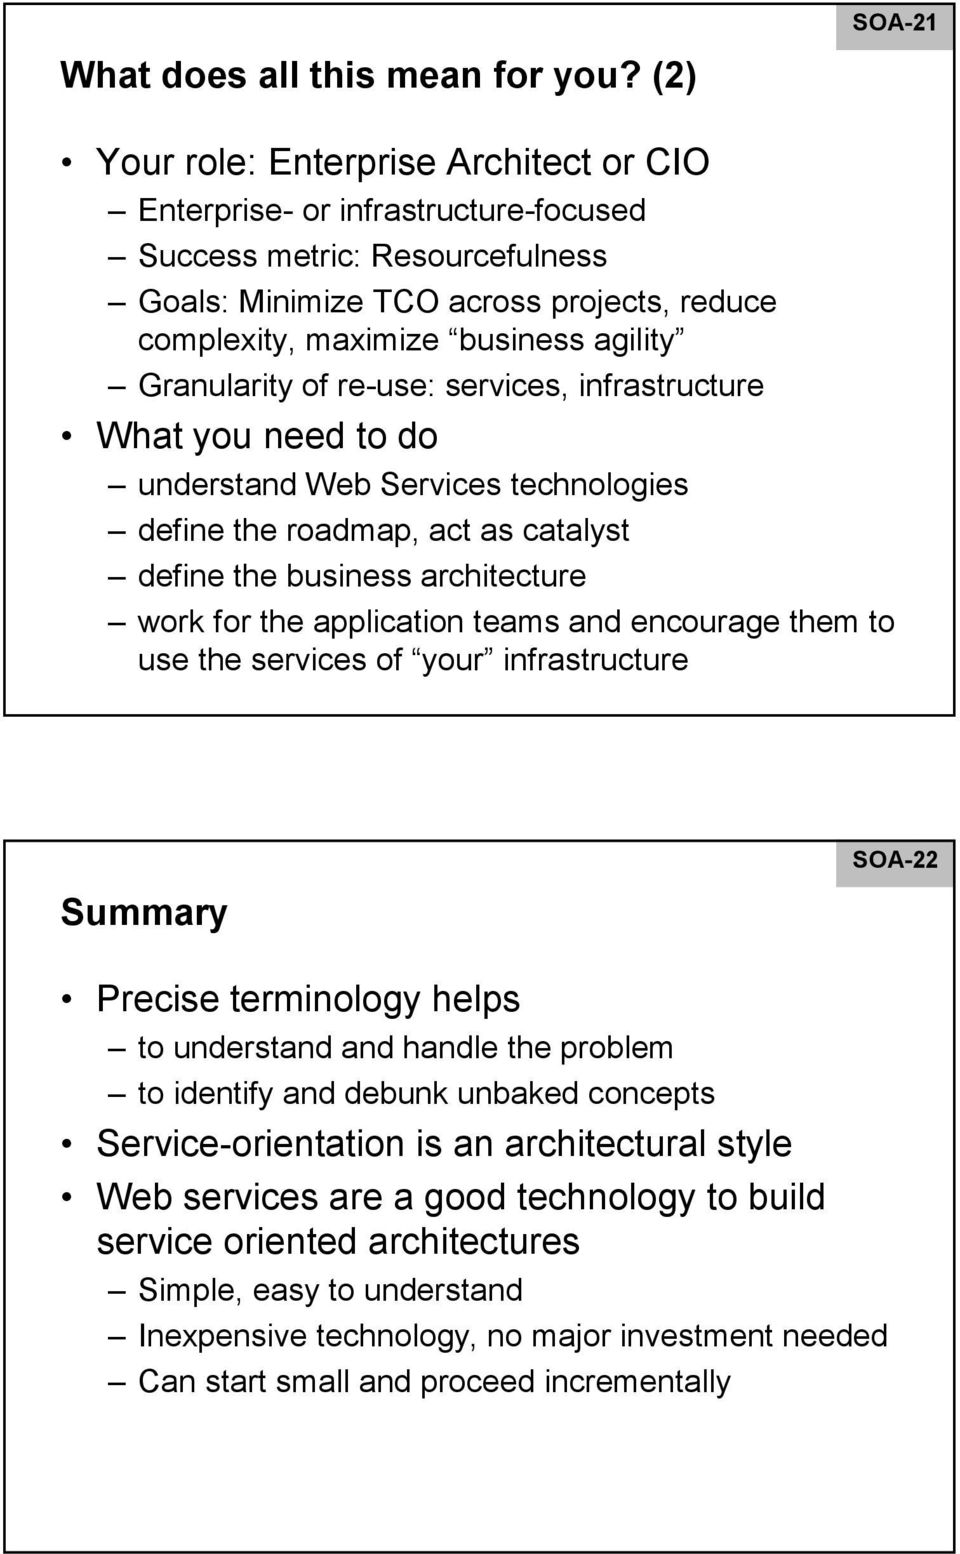 Granularity of re-use: s, infrastructure What you need to do understand Web Services technologies define the roadmap, act as catalyst define the business architecture work for the application teams